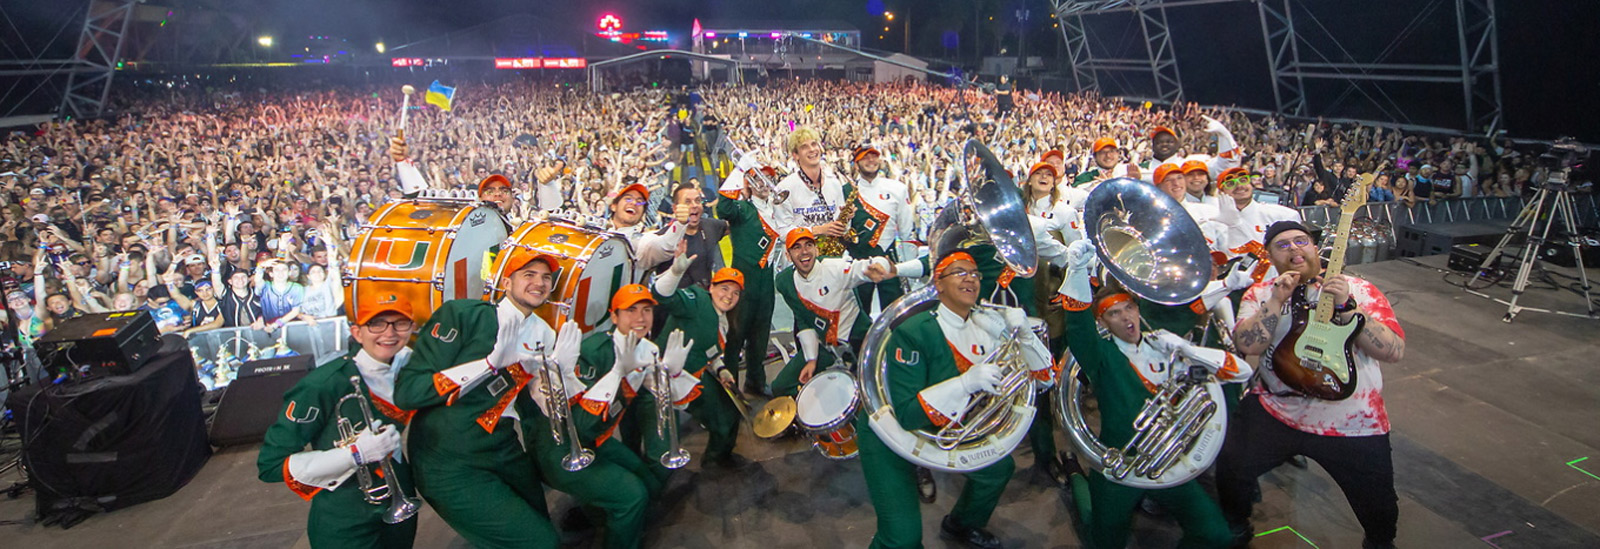 University of Miami, Band of the Hour, Frost School of Music, Ultra, Ultra Music Festival